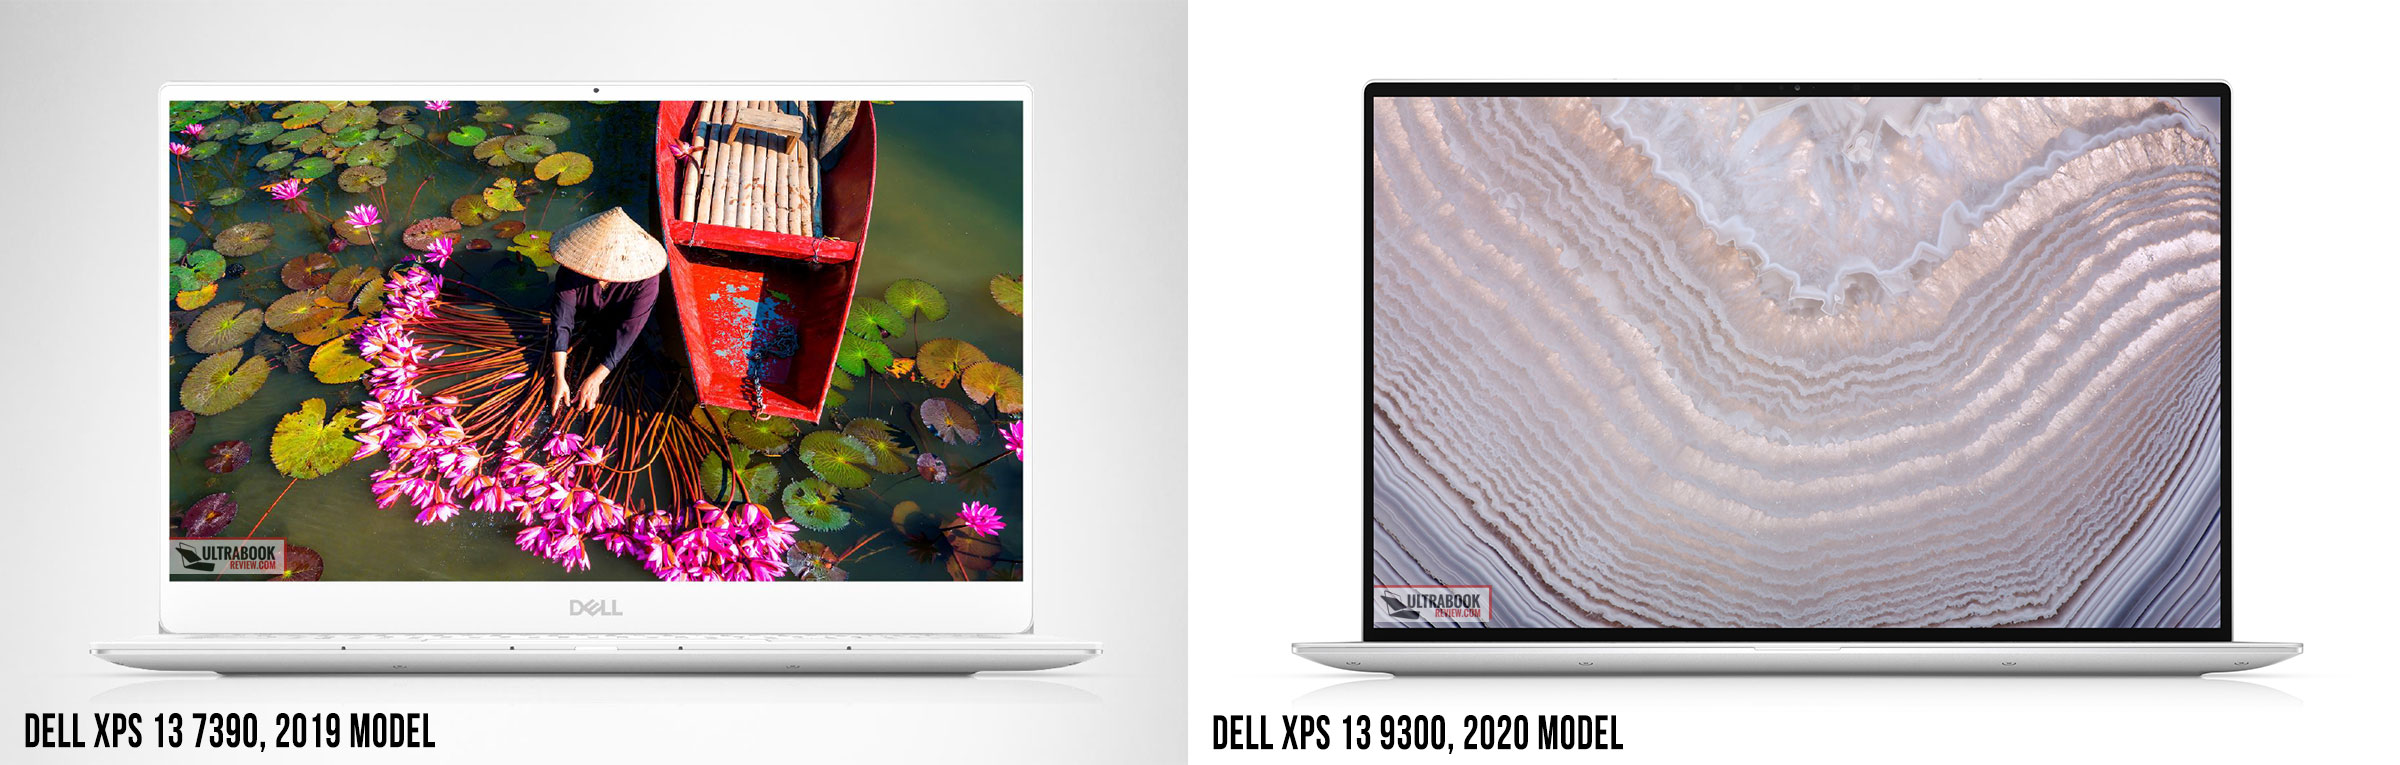 Dell XPS 13 9300 new 16:10 screen